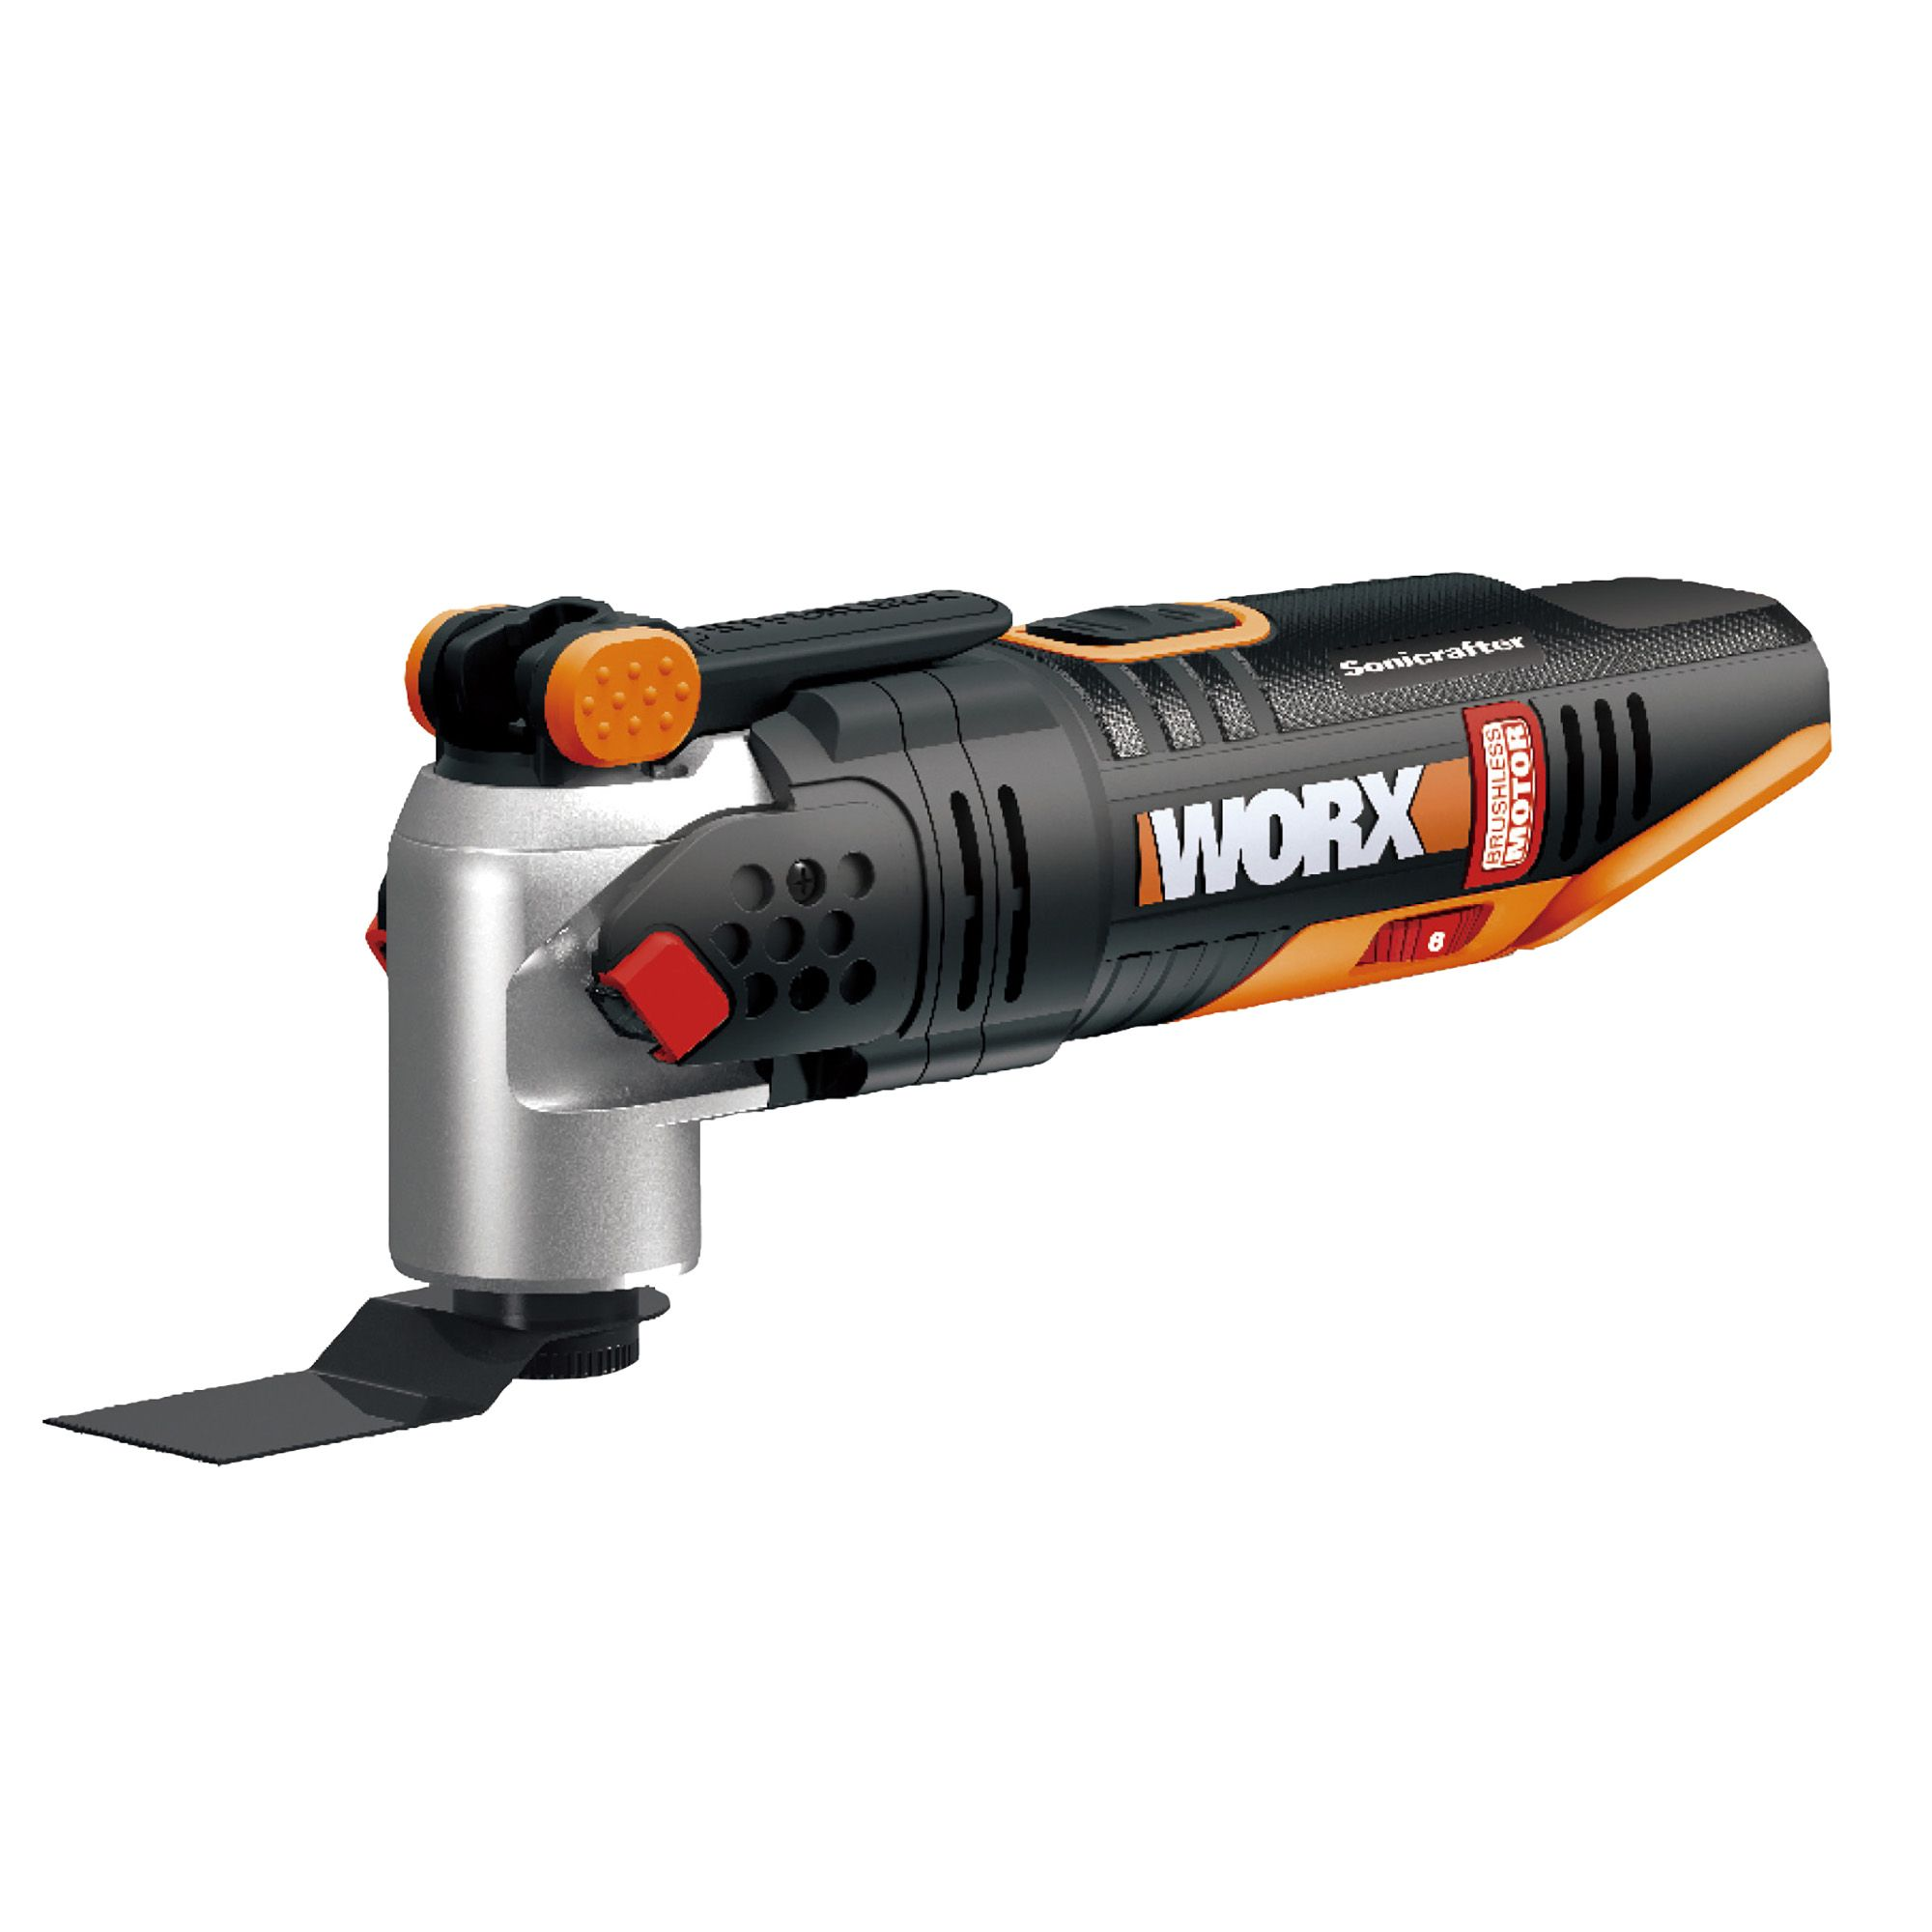 worx powershare 20v cordless sonicrafter multi tool wx693 9 bare departments tradepoint. Black Bedroom Furniture Sets. Home Design Ideas